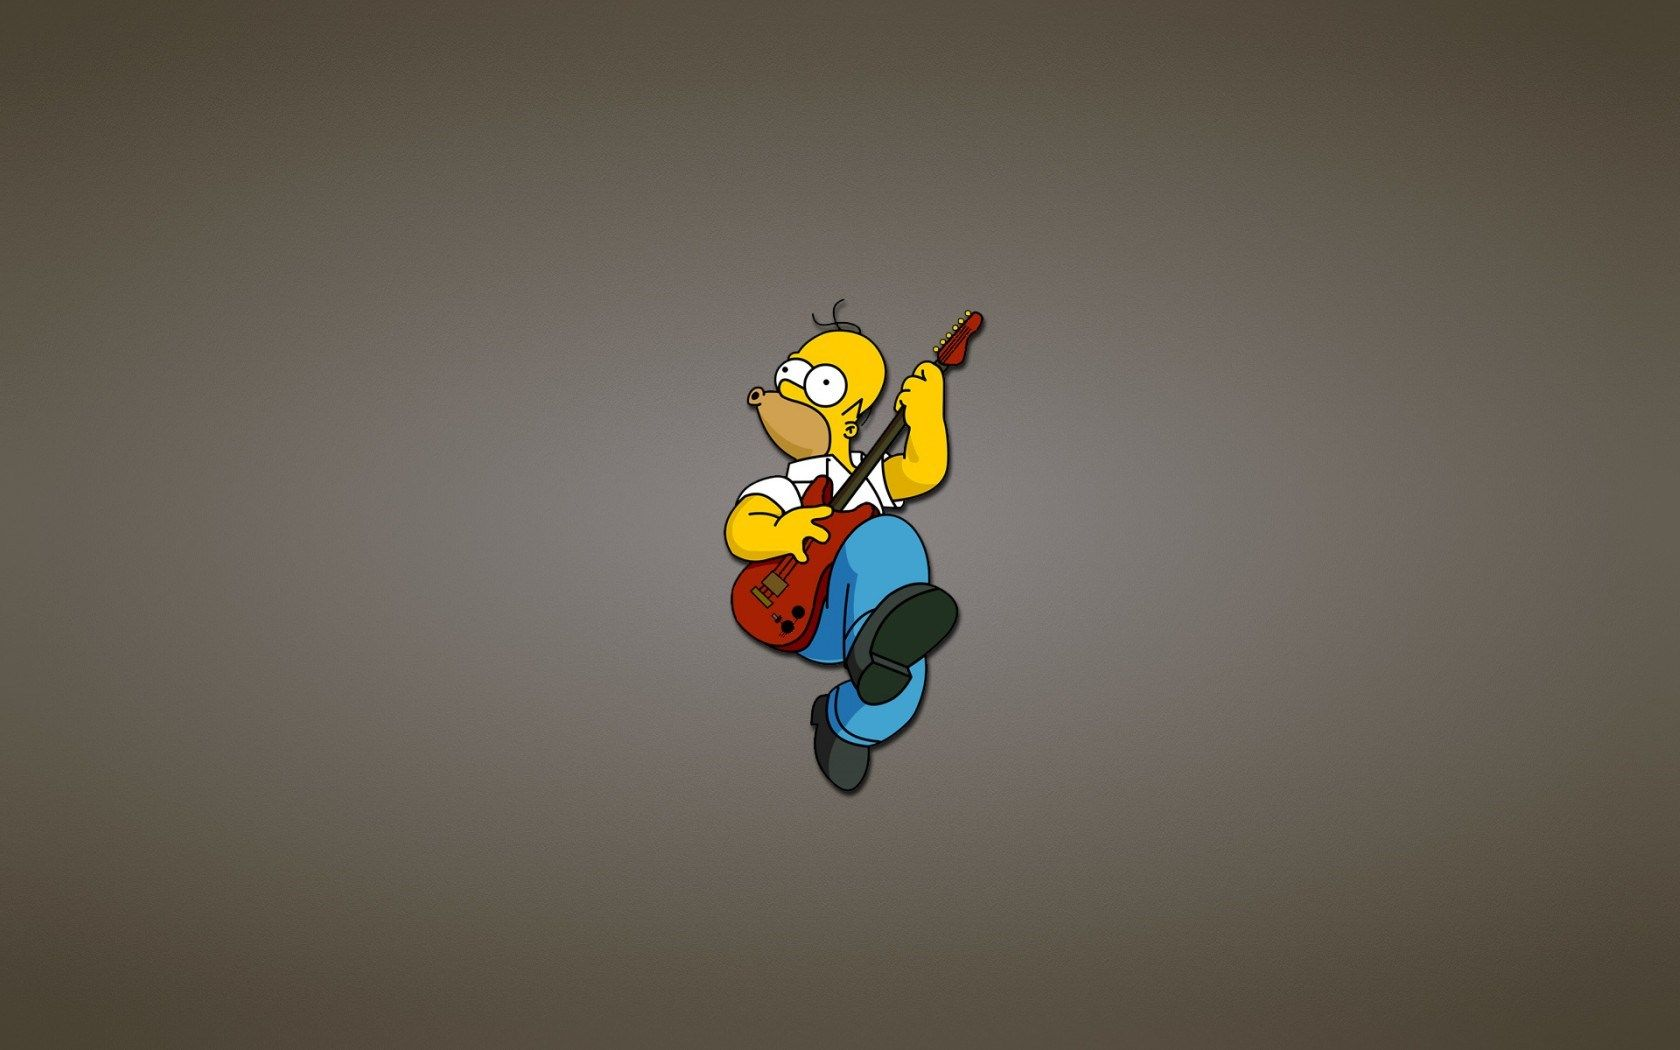 Simpsons Wallpaper For Bedroom The Simpsons Hd Wallpapers 10 The Simpsons Hd Wallpapers